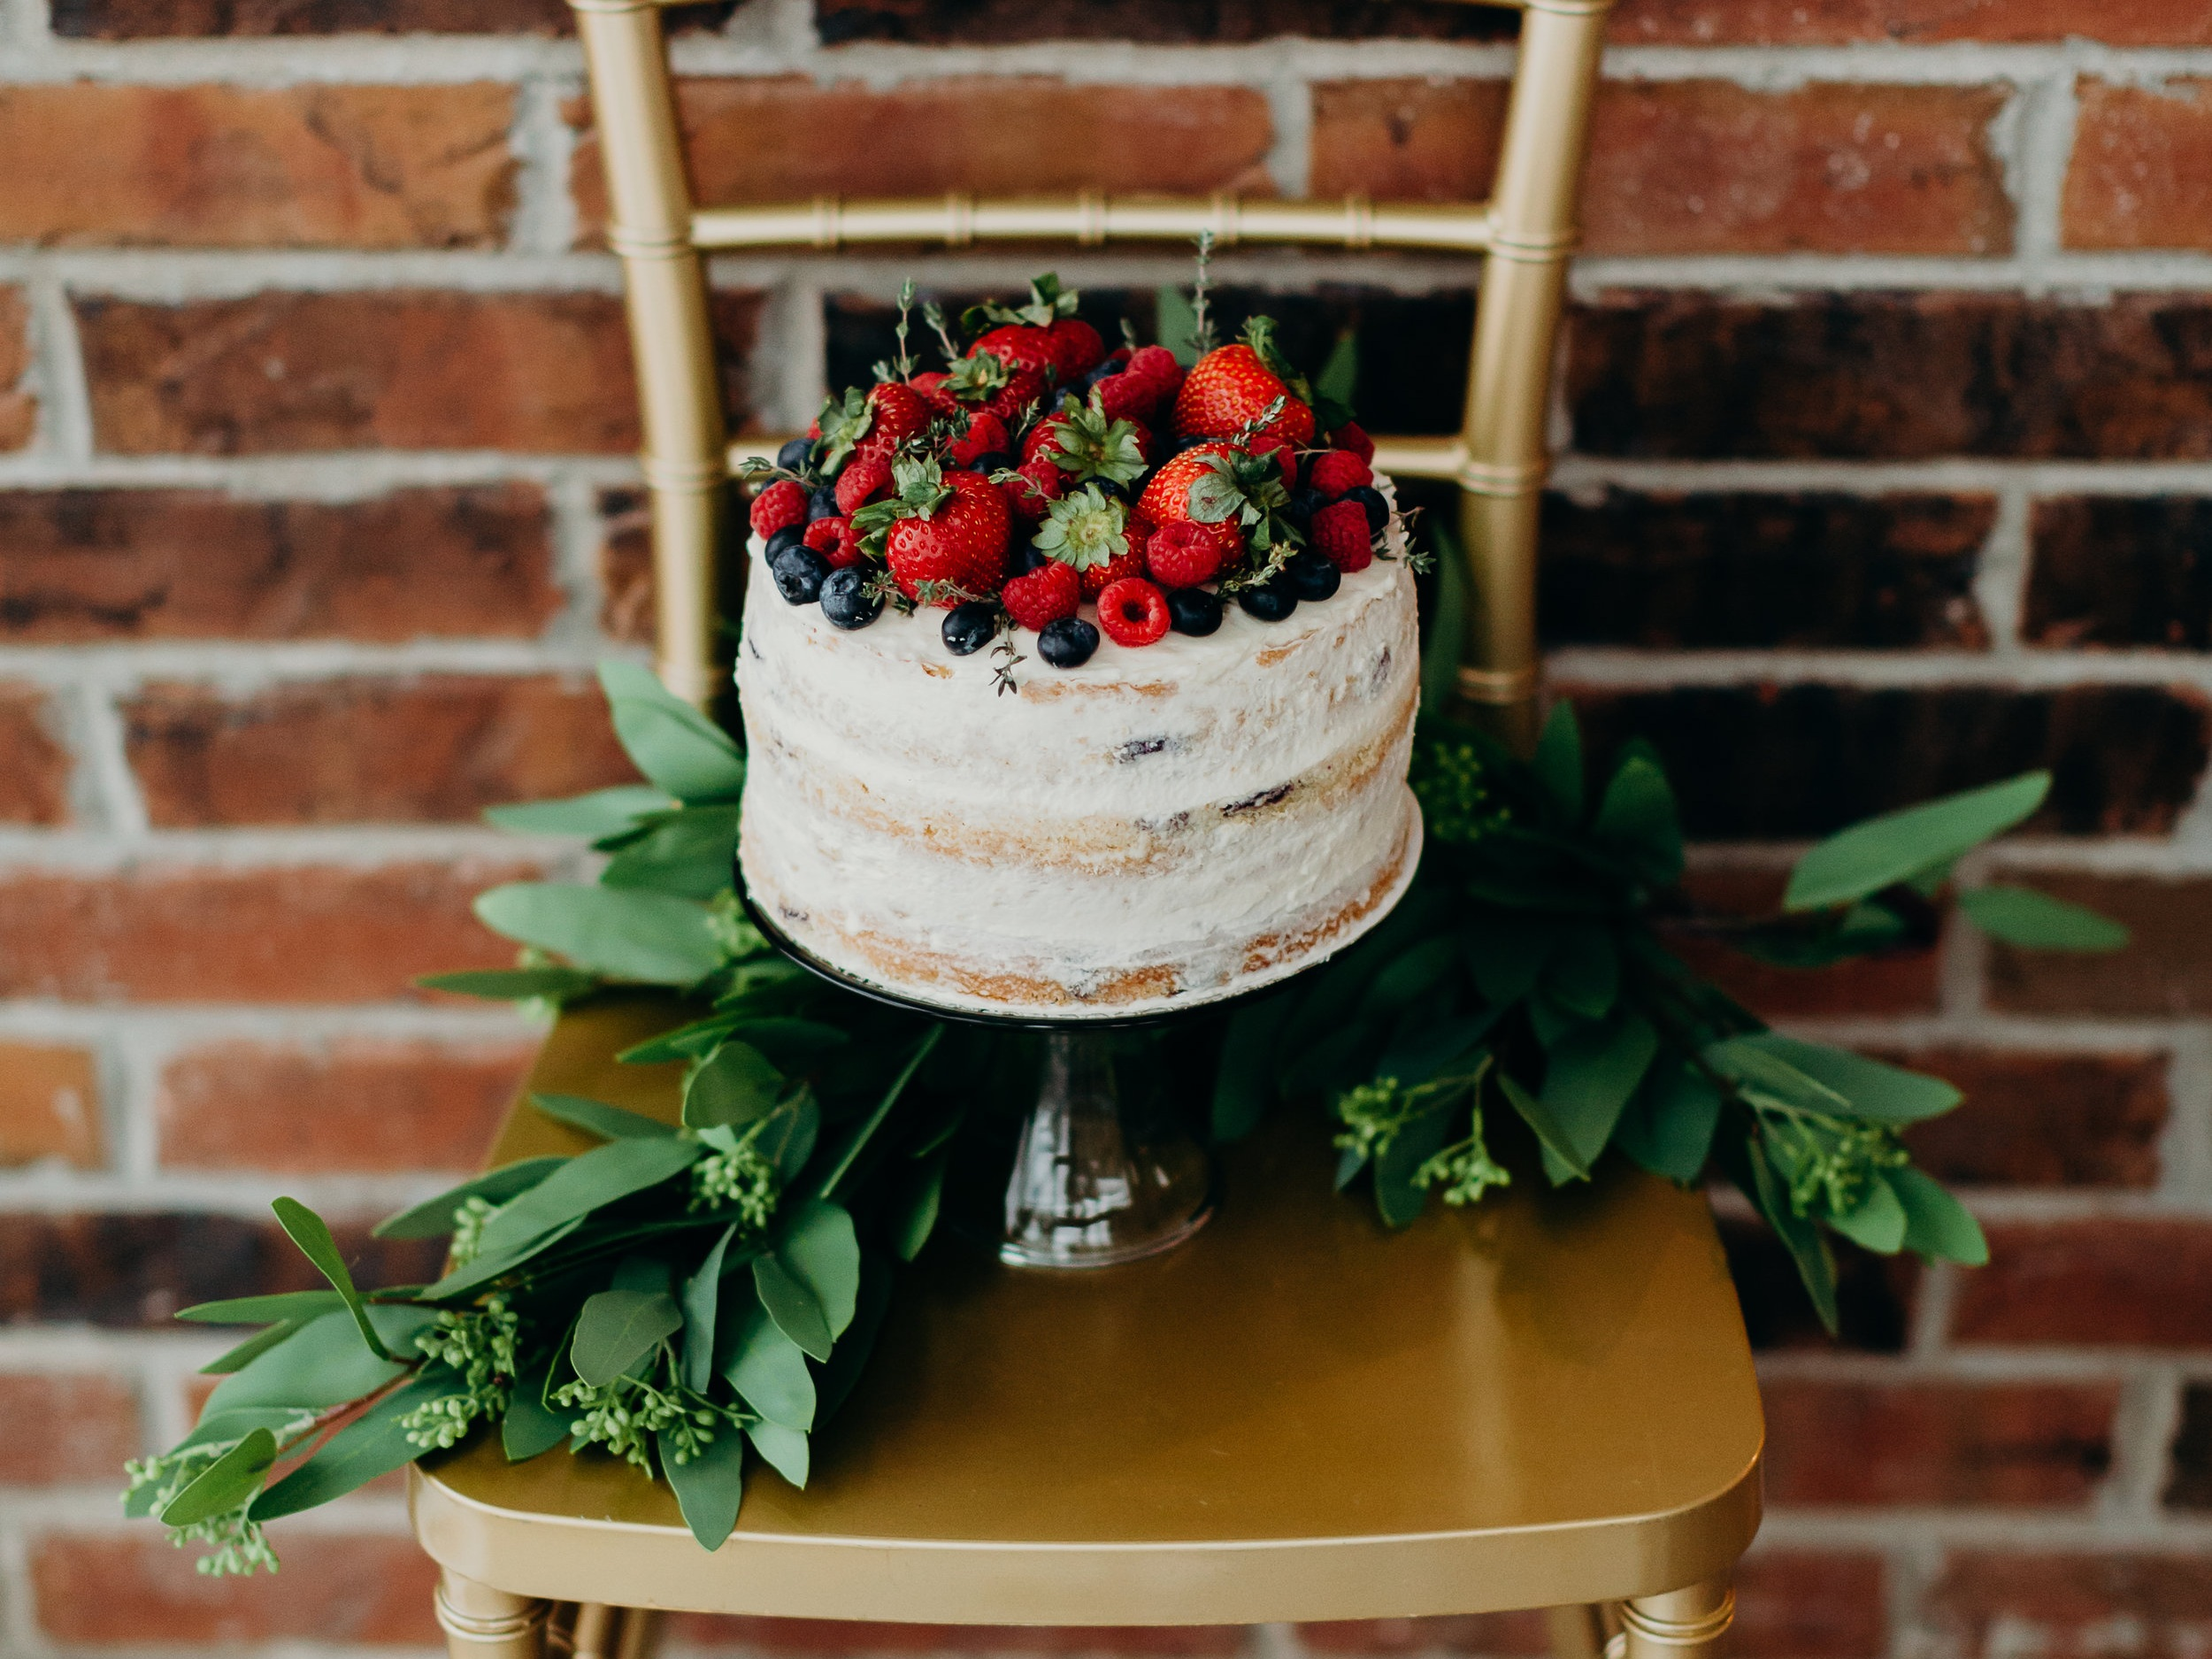 PARTIES & EVENTS - Here at Social Graces we love a good party, whether it be a birthday, a corporate event, or a charity gala.